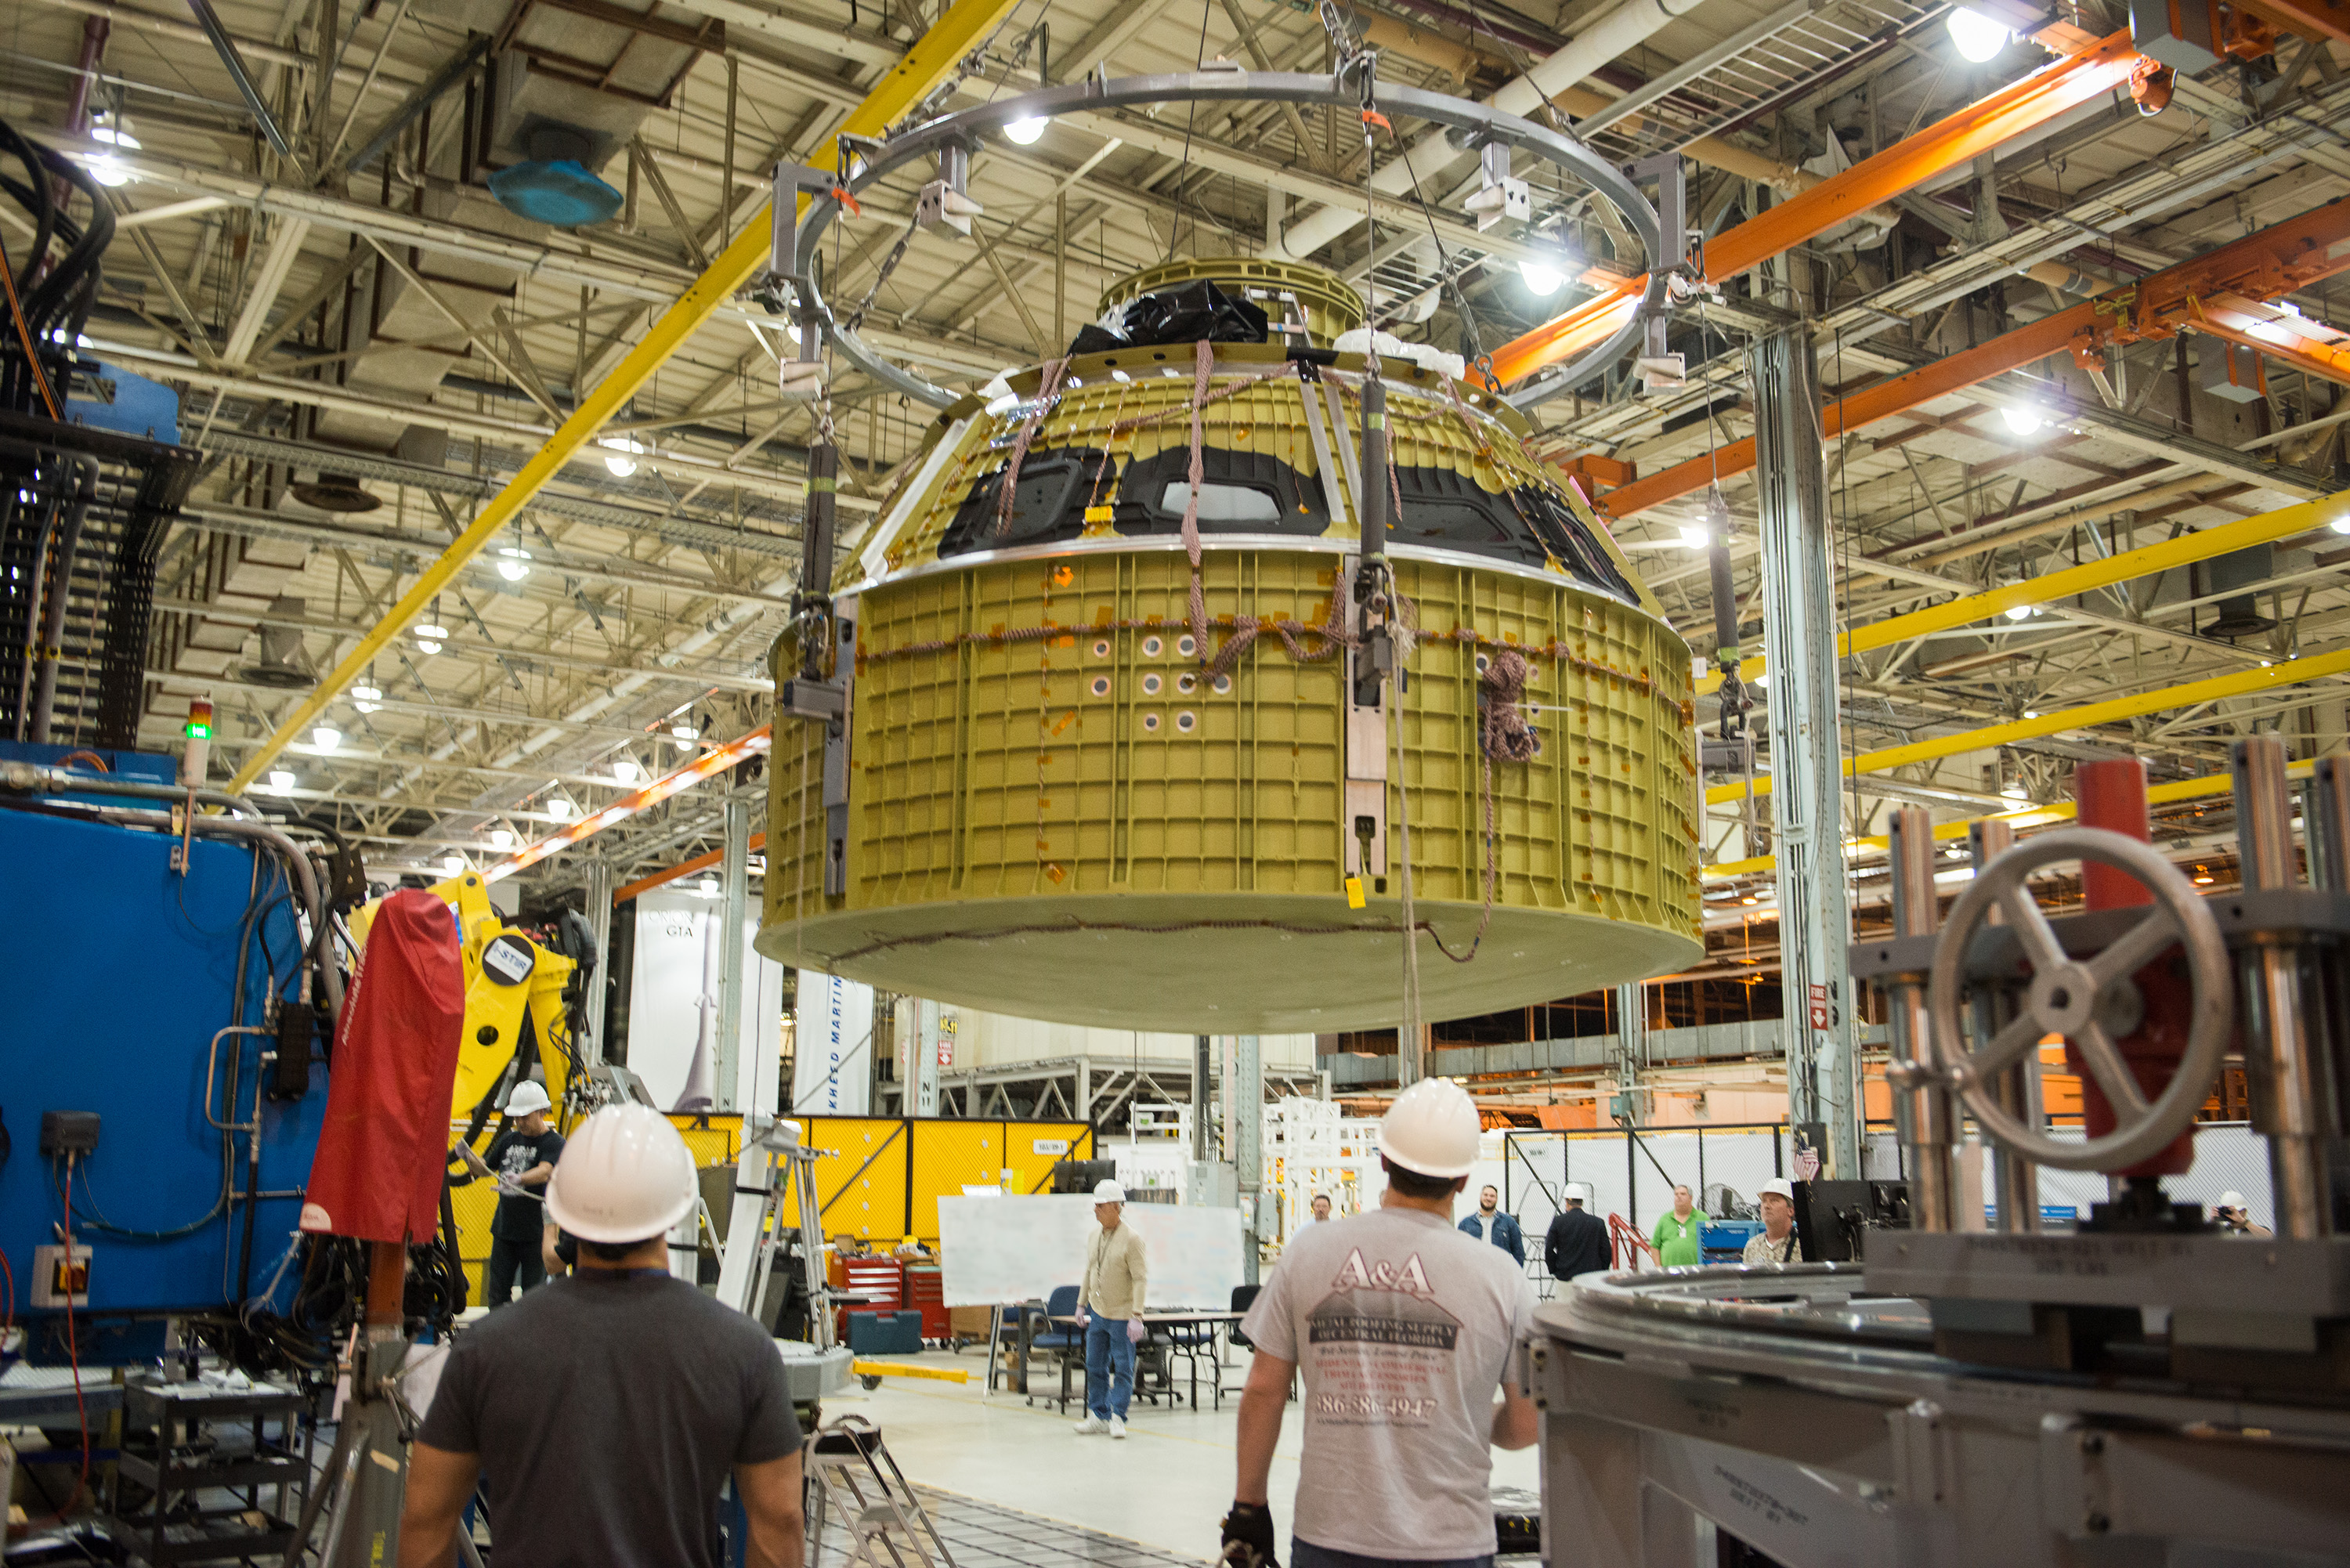 Engineers Mark Completion of Orion's Pressure Vessel (I)